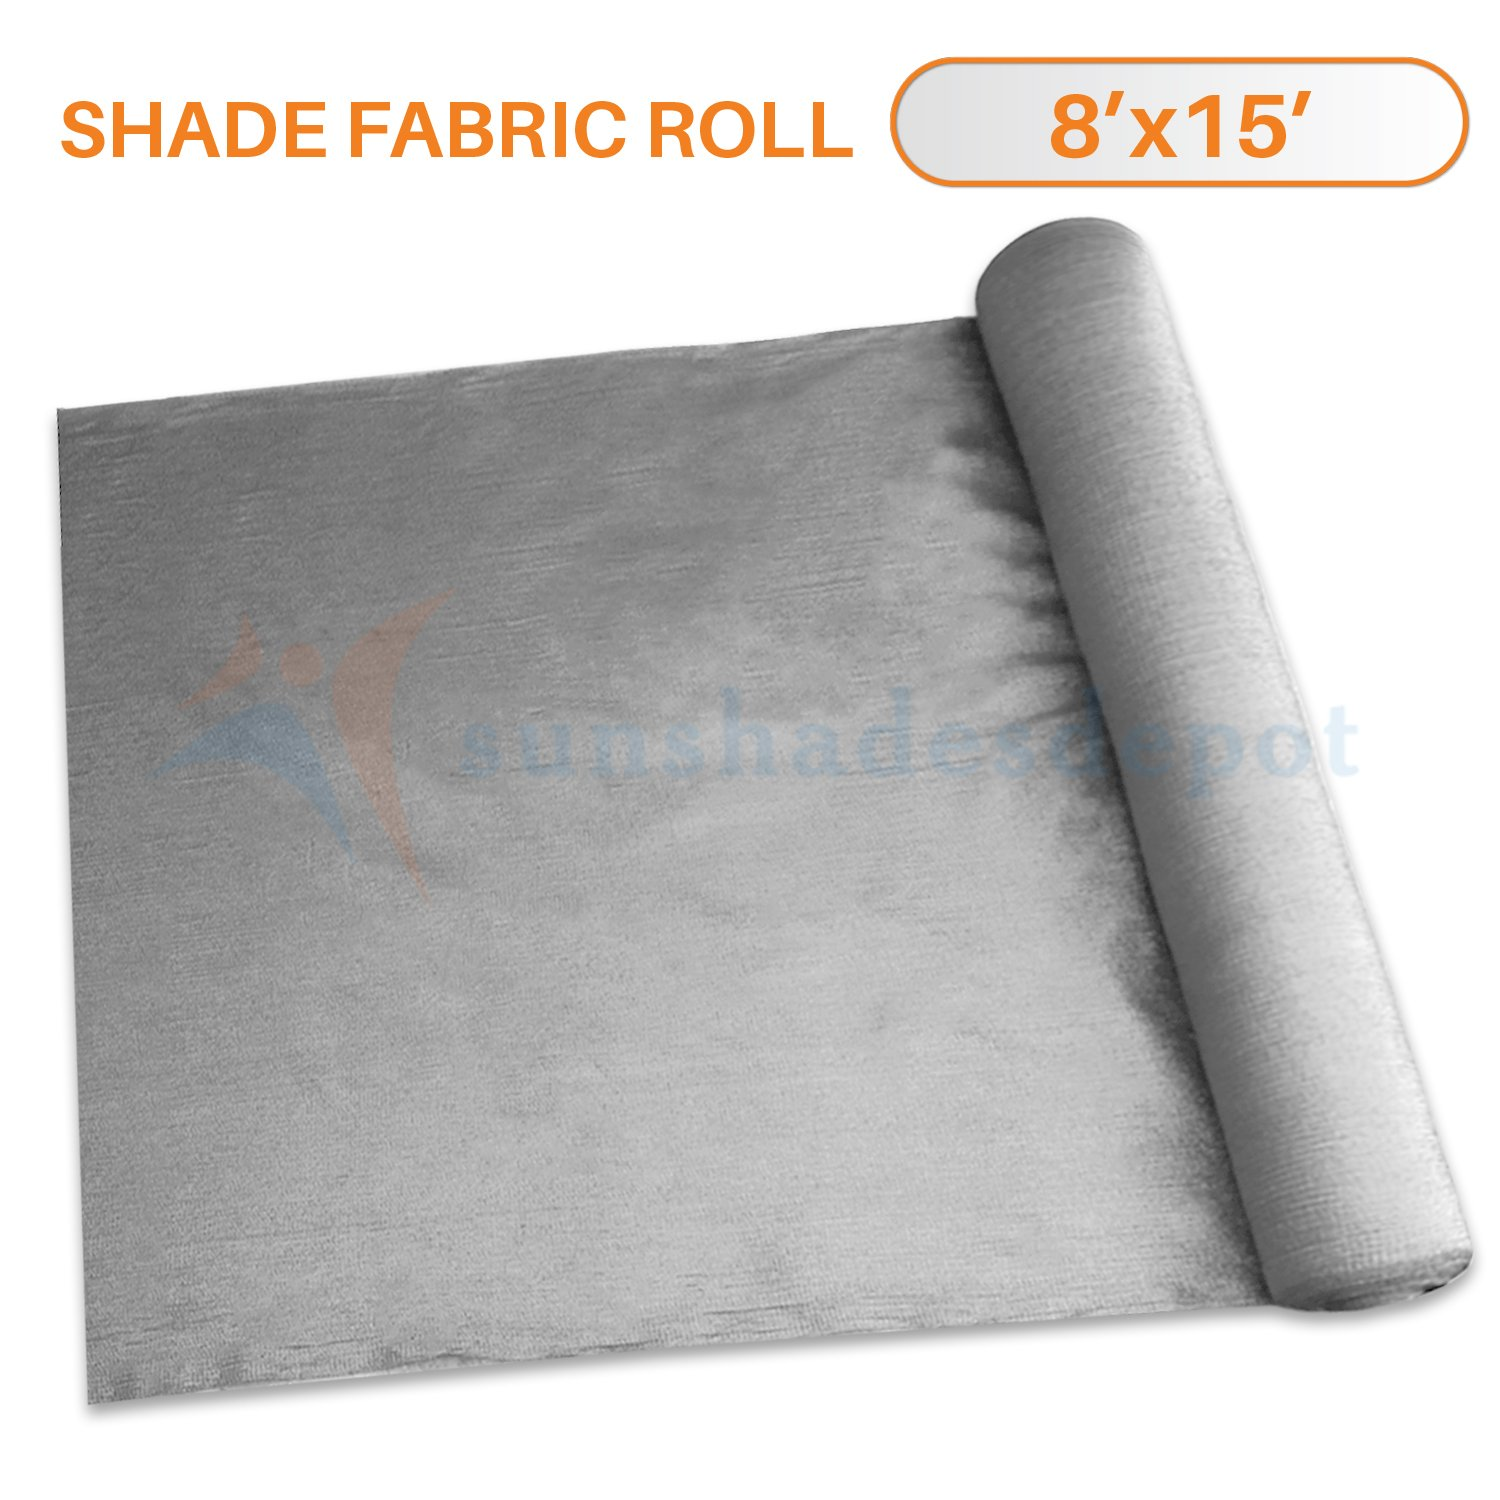 Sunshades Depot 8' x 15' Shade Cloth 180 GSM HDPE Light Grey Fabric Roll Up to 95% Blockage UV Resistant Mesh Net